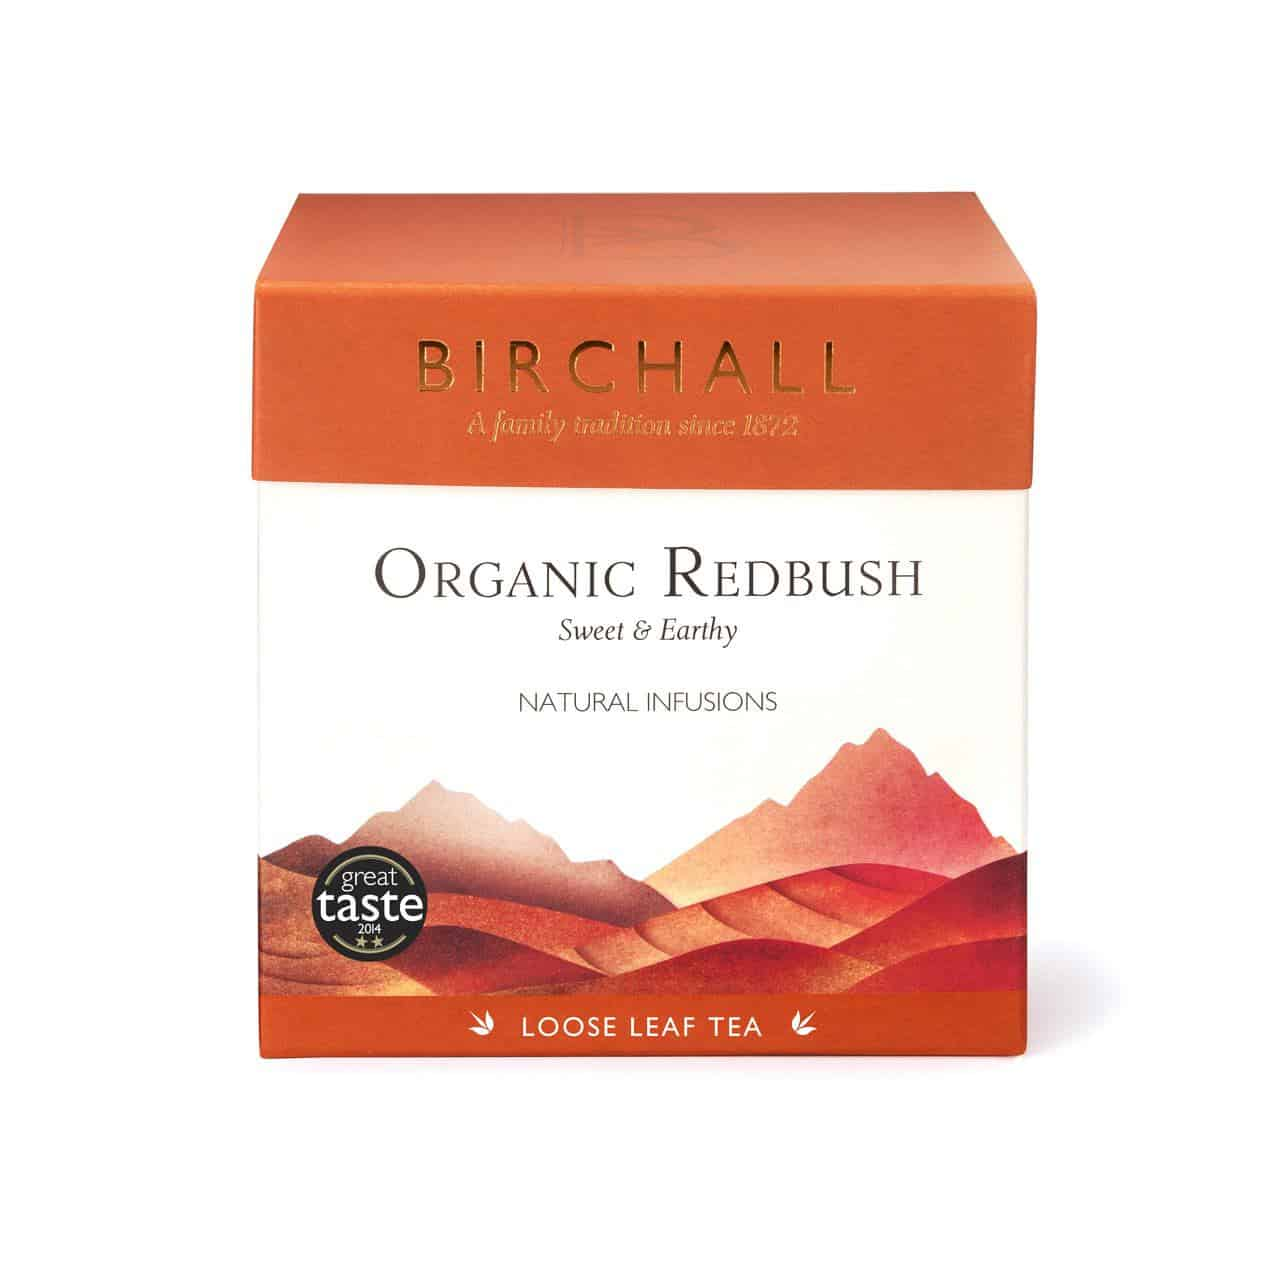 Birchall Organic Redbush - Loose Leaf Tea